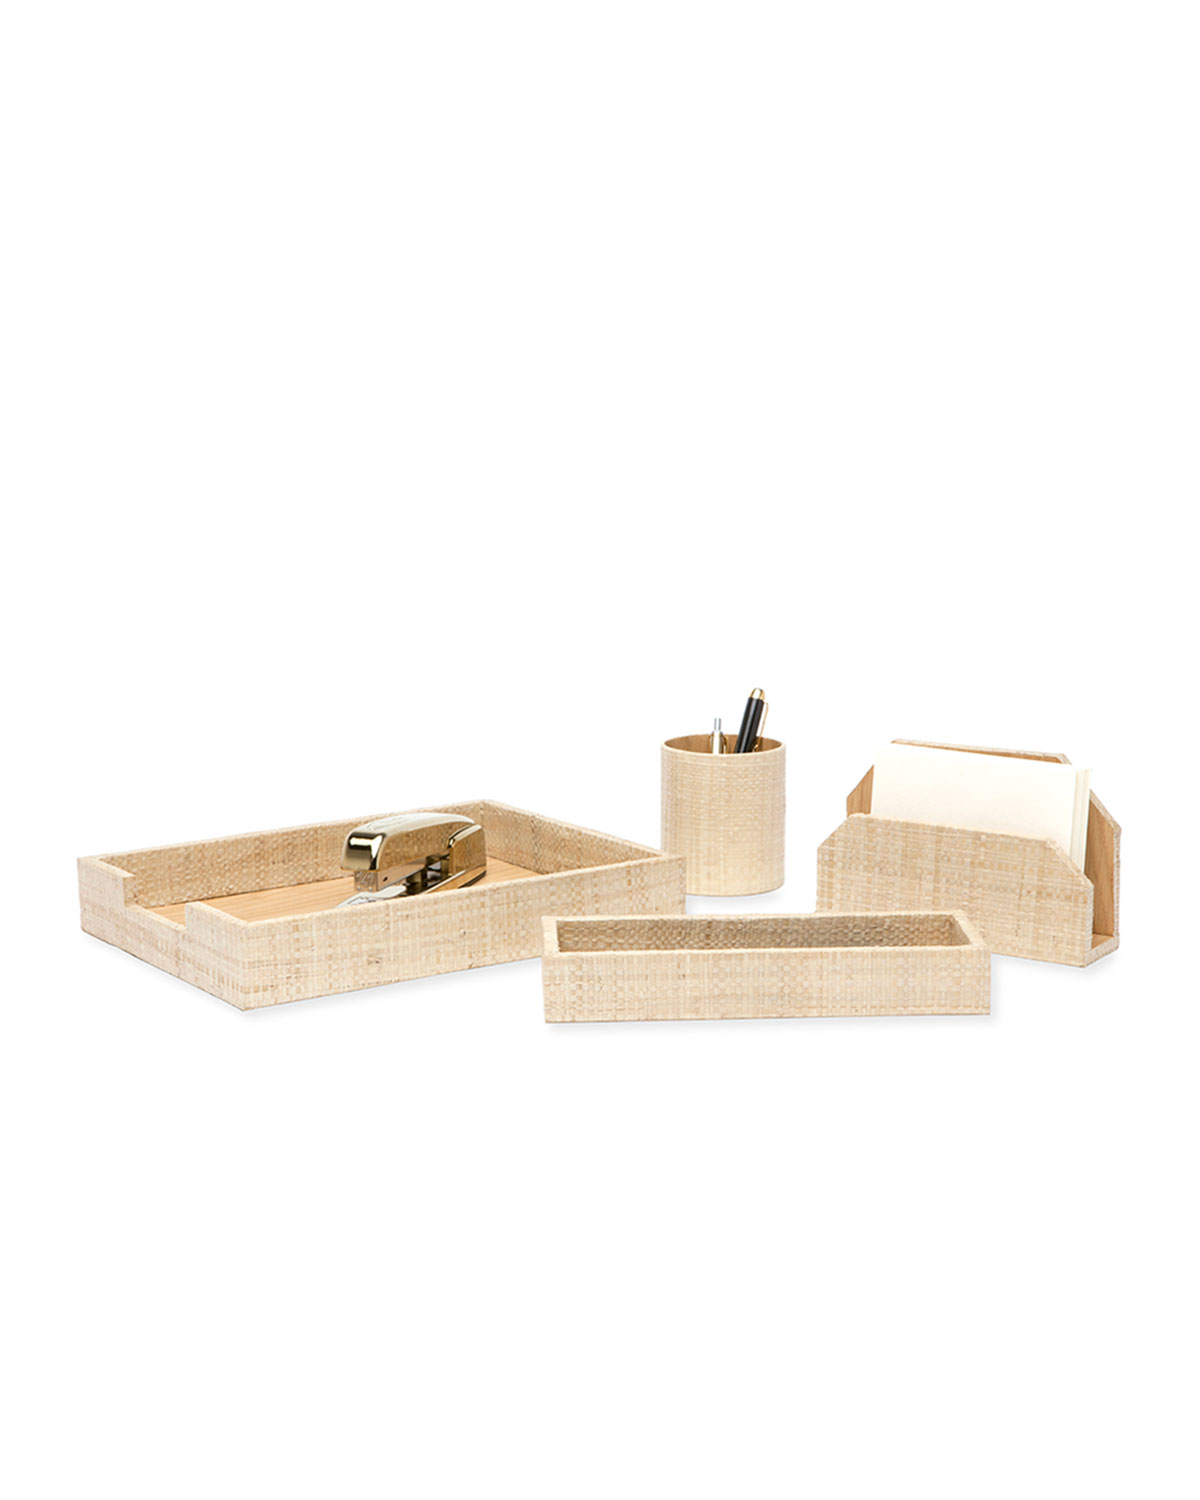 Pigeon And Poodle Koba Desk Accessories Set Neiman Marcus